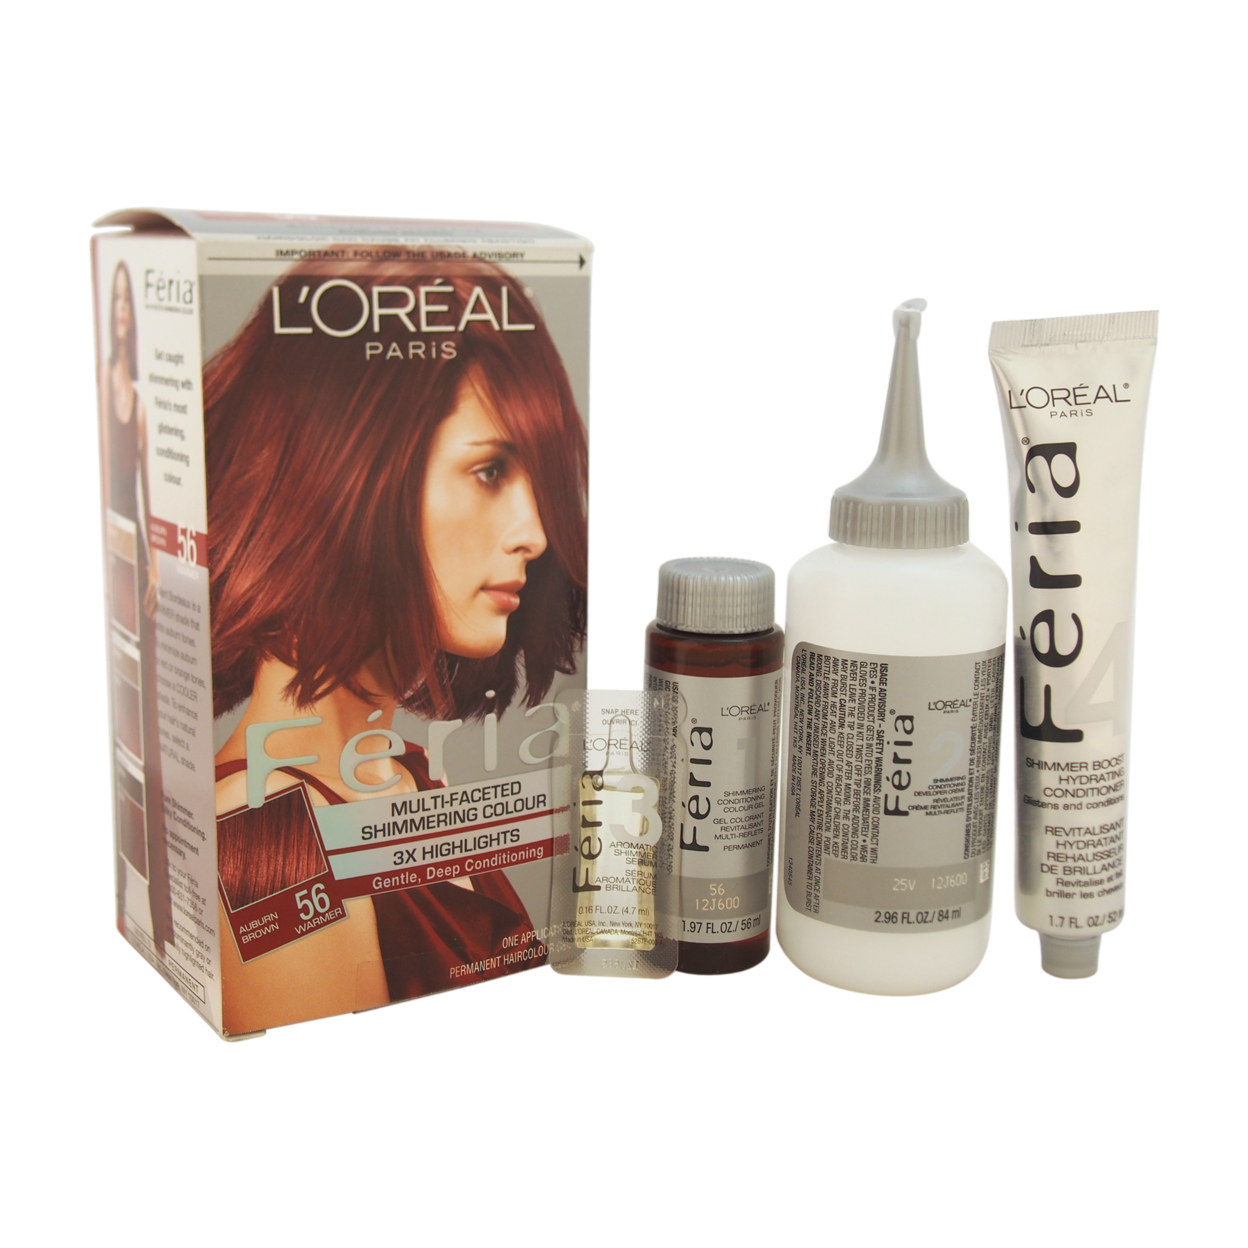 Feria Multi Faceted Shimmering Color 3x Highlights 56 Auburn Brown